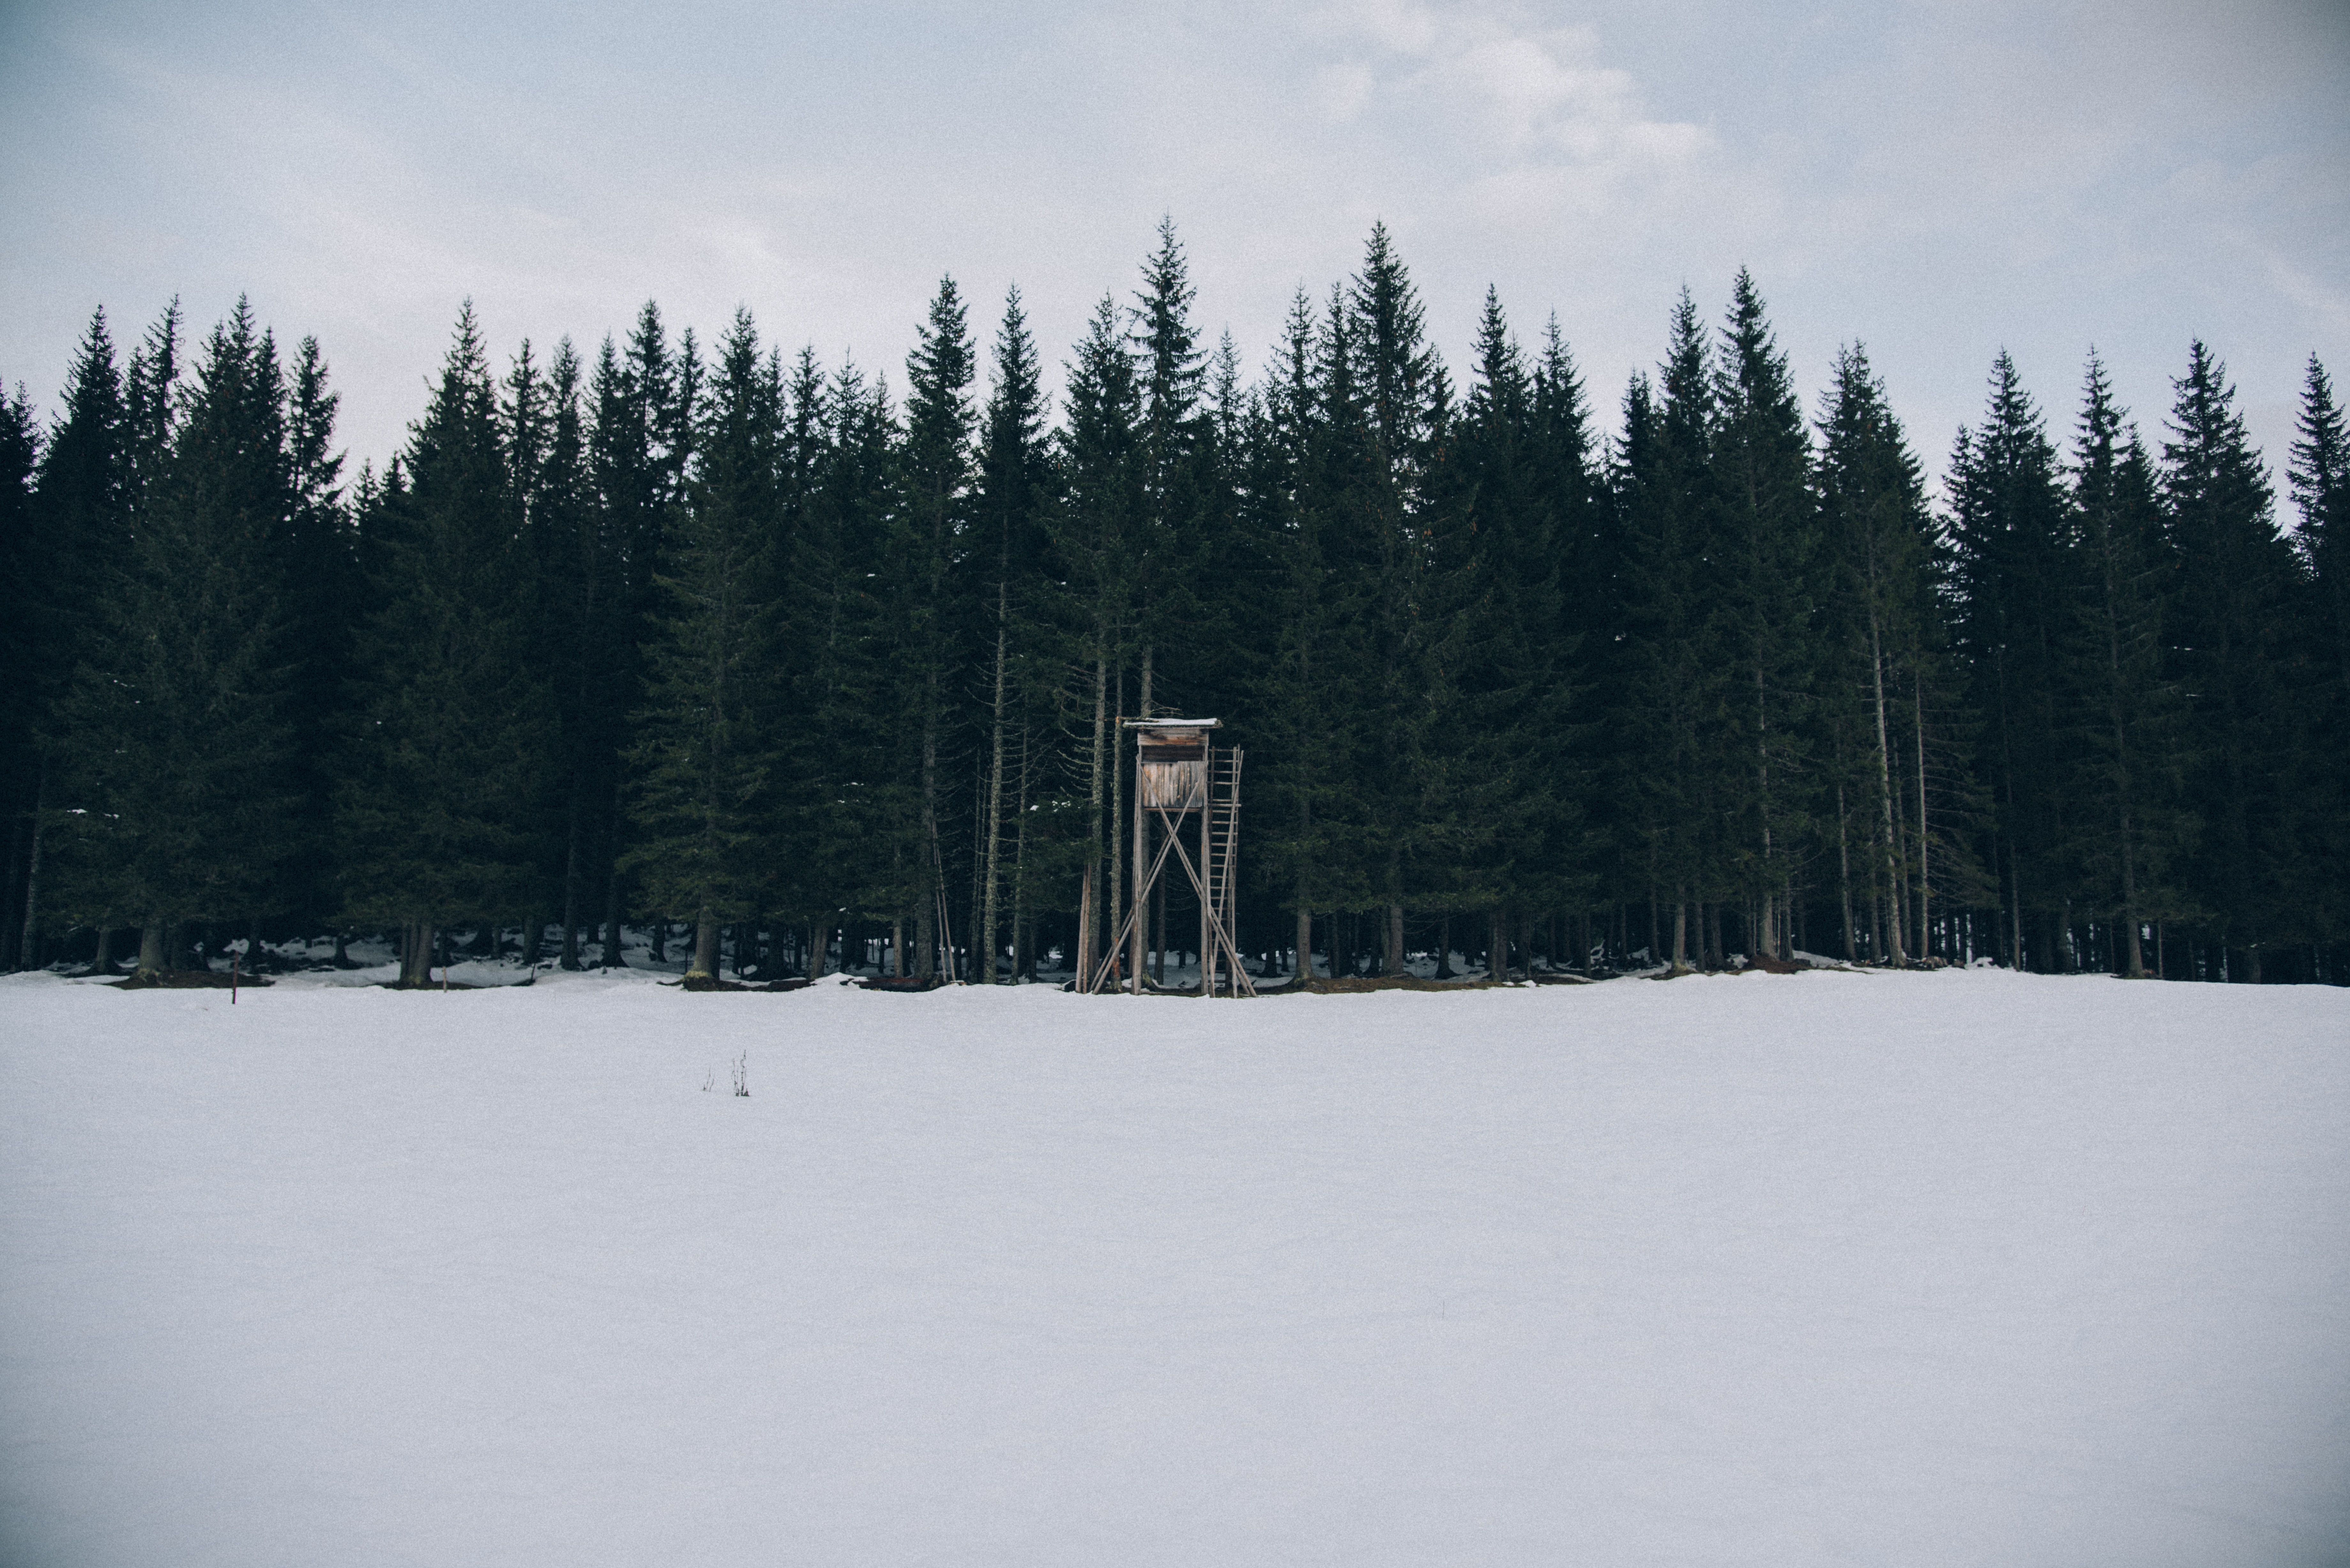 watchtower in front of trees